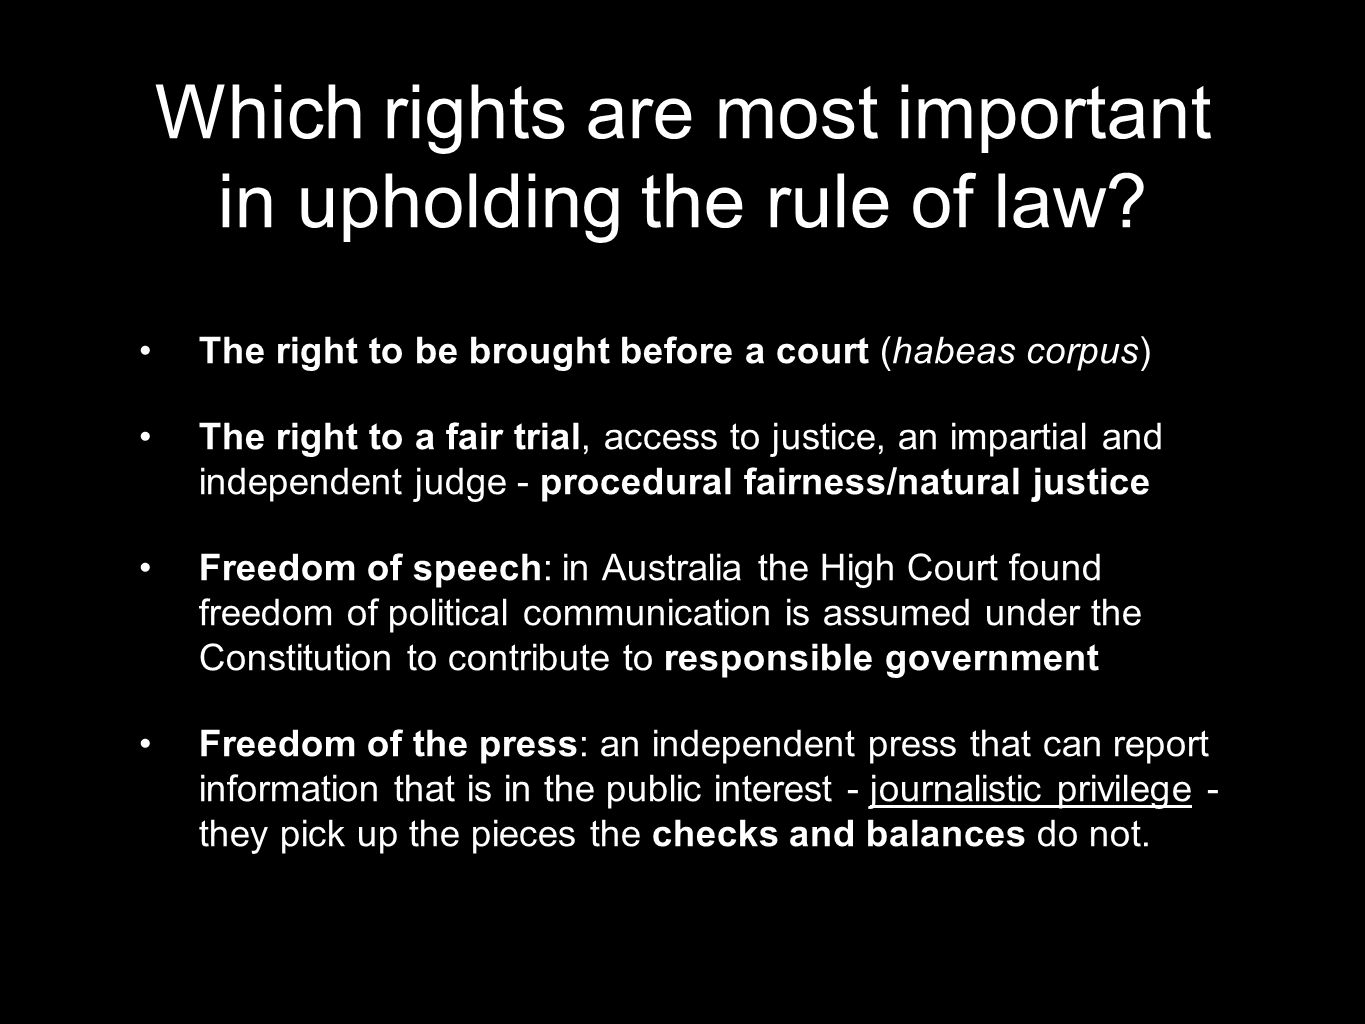 Which rights are most important in upholding the rule of law? The right to be brought before a court (habeas corpus) The right to a fair trial, access